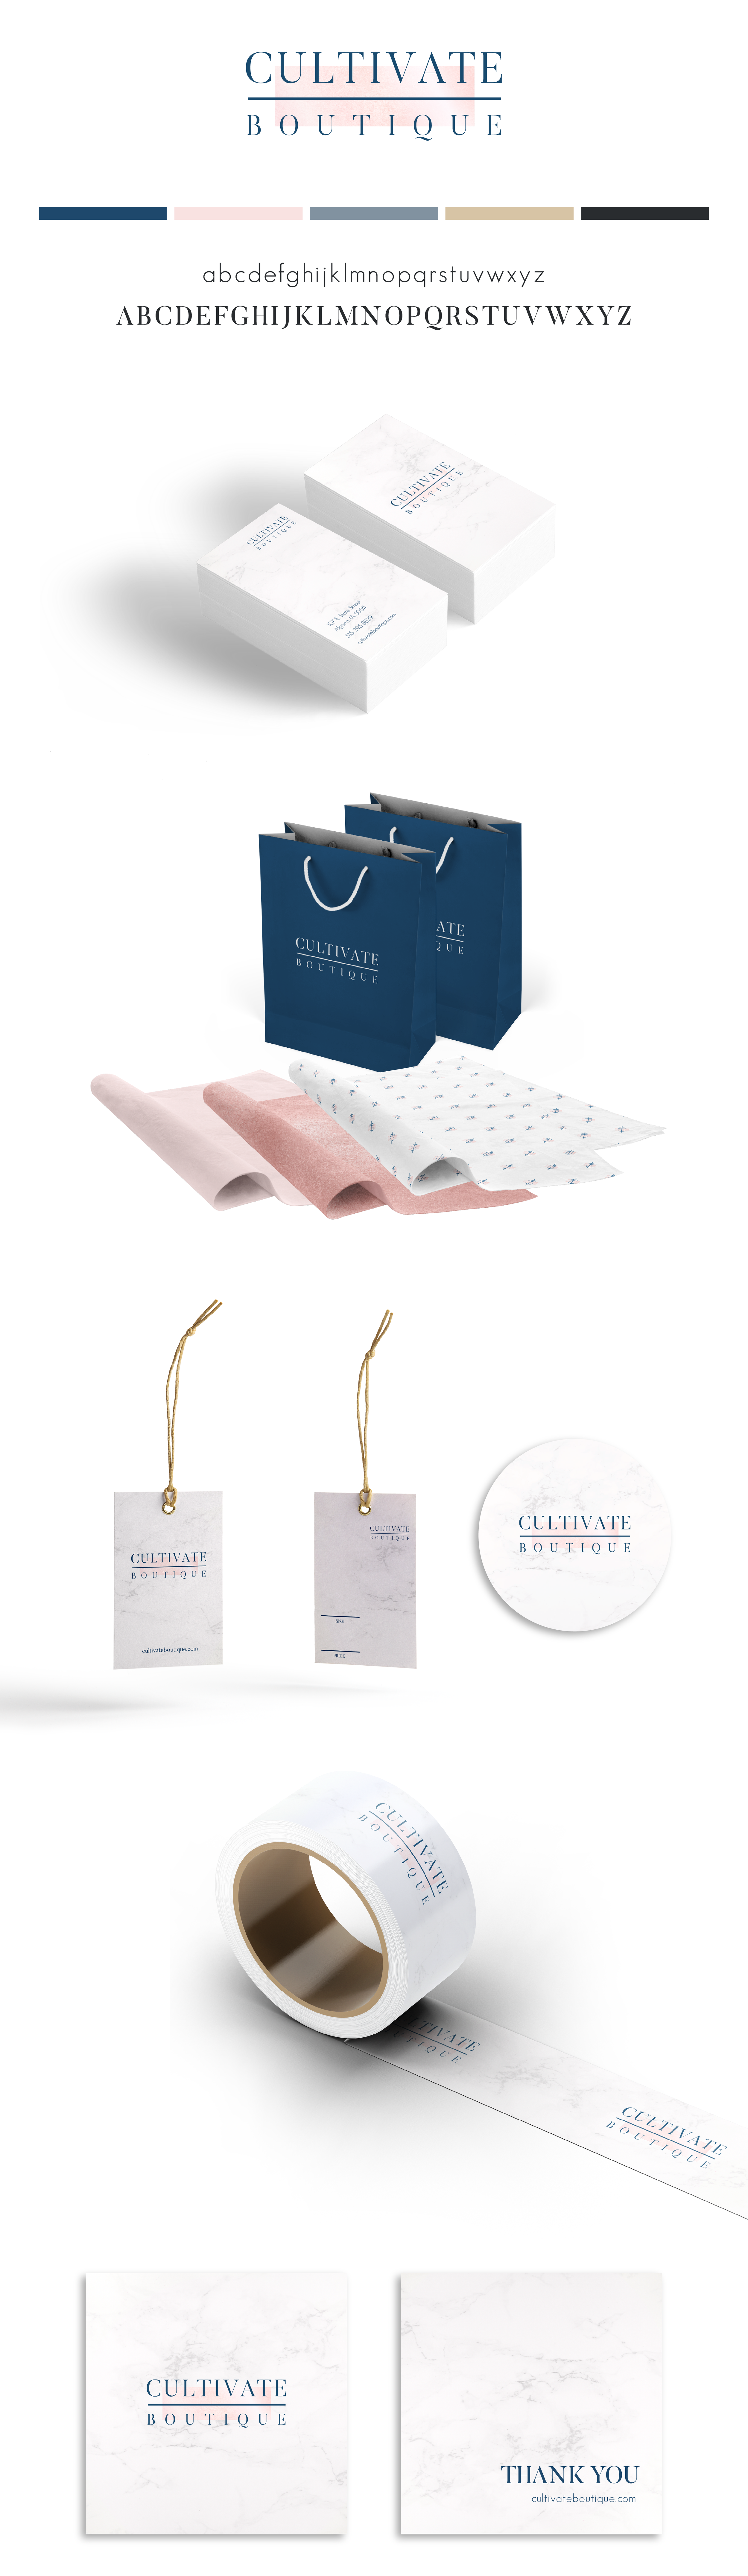 Brand Pieces - Cultivate-01.png